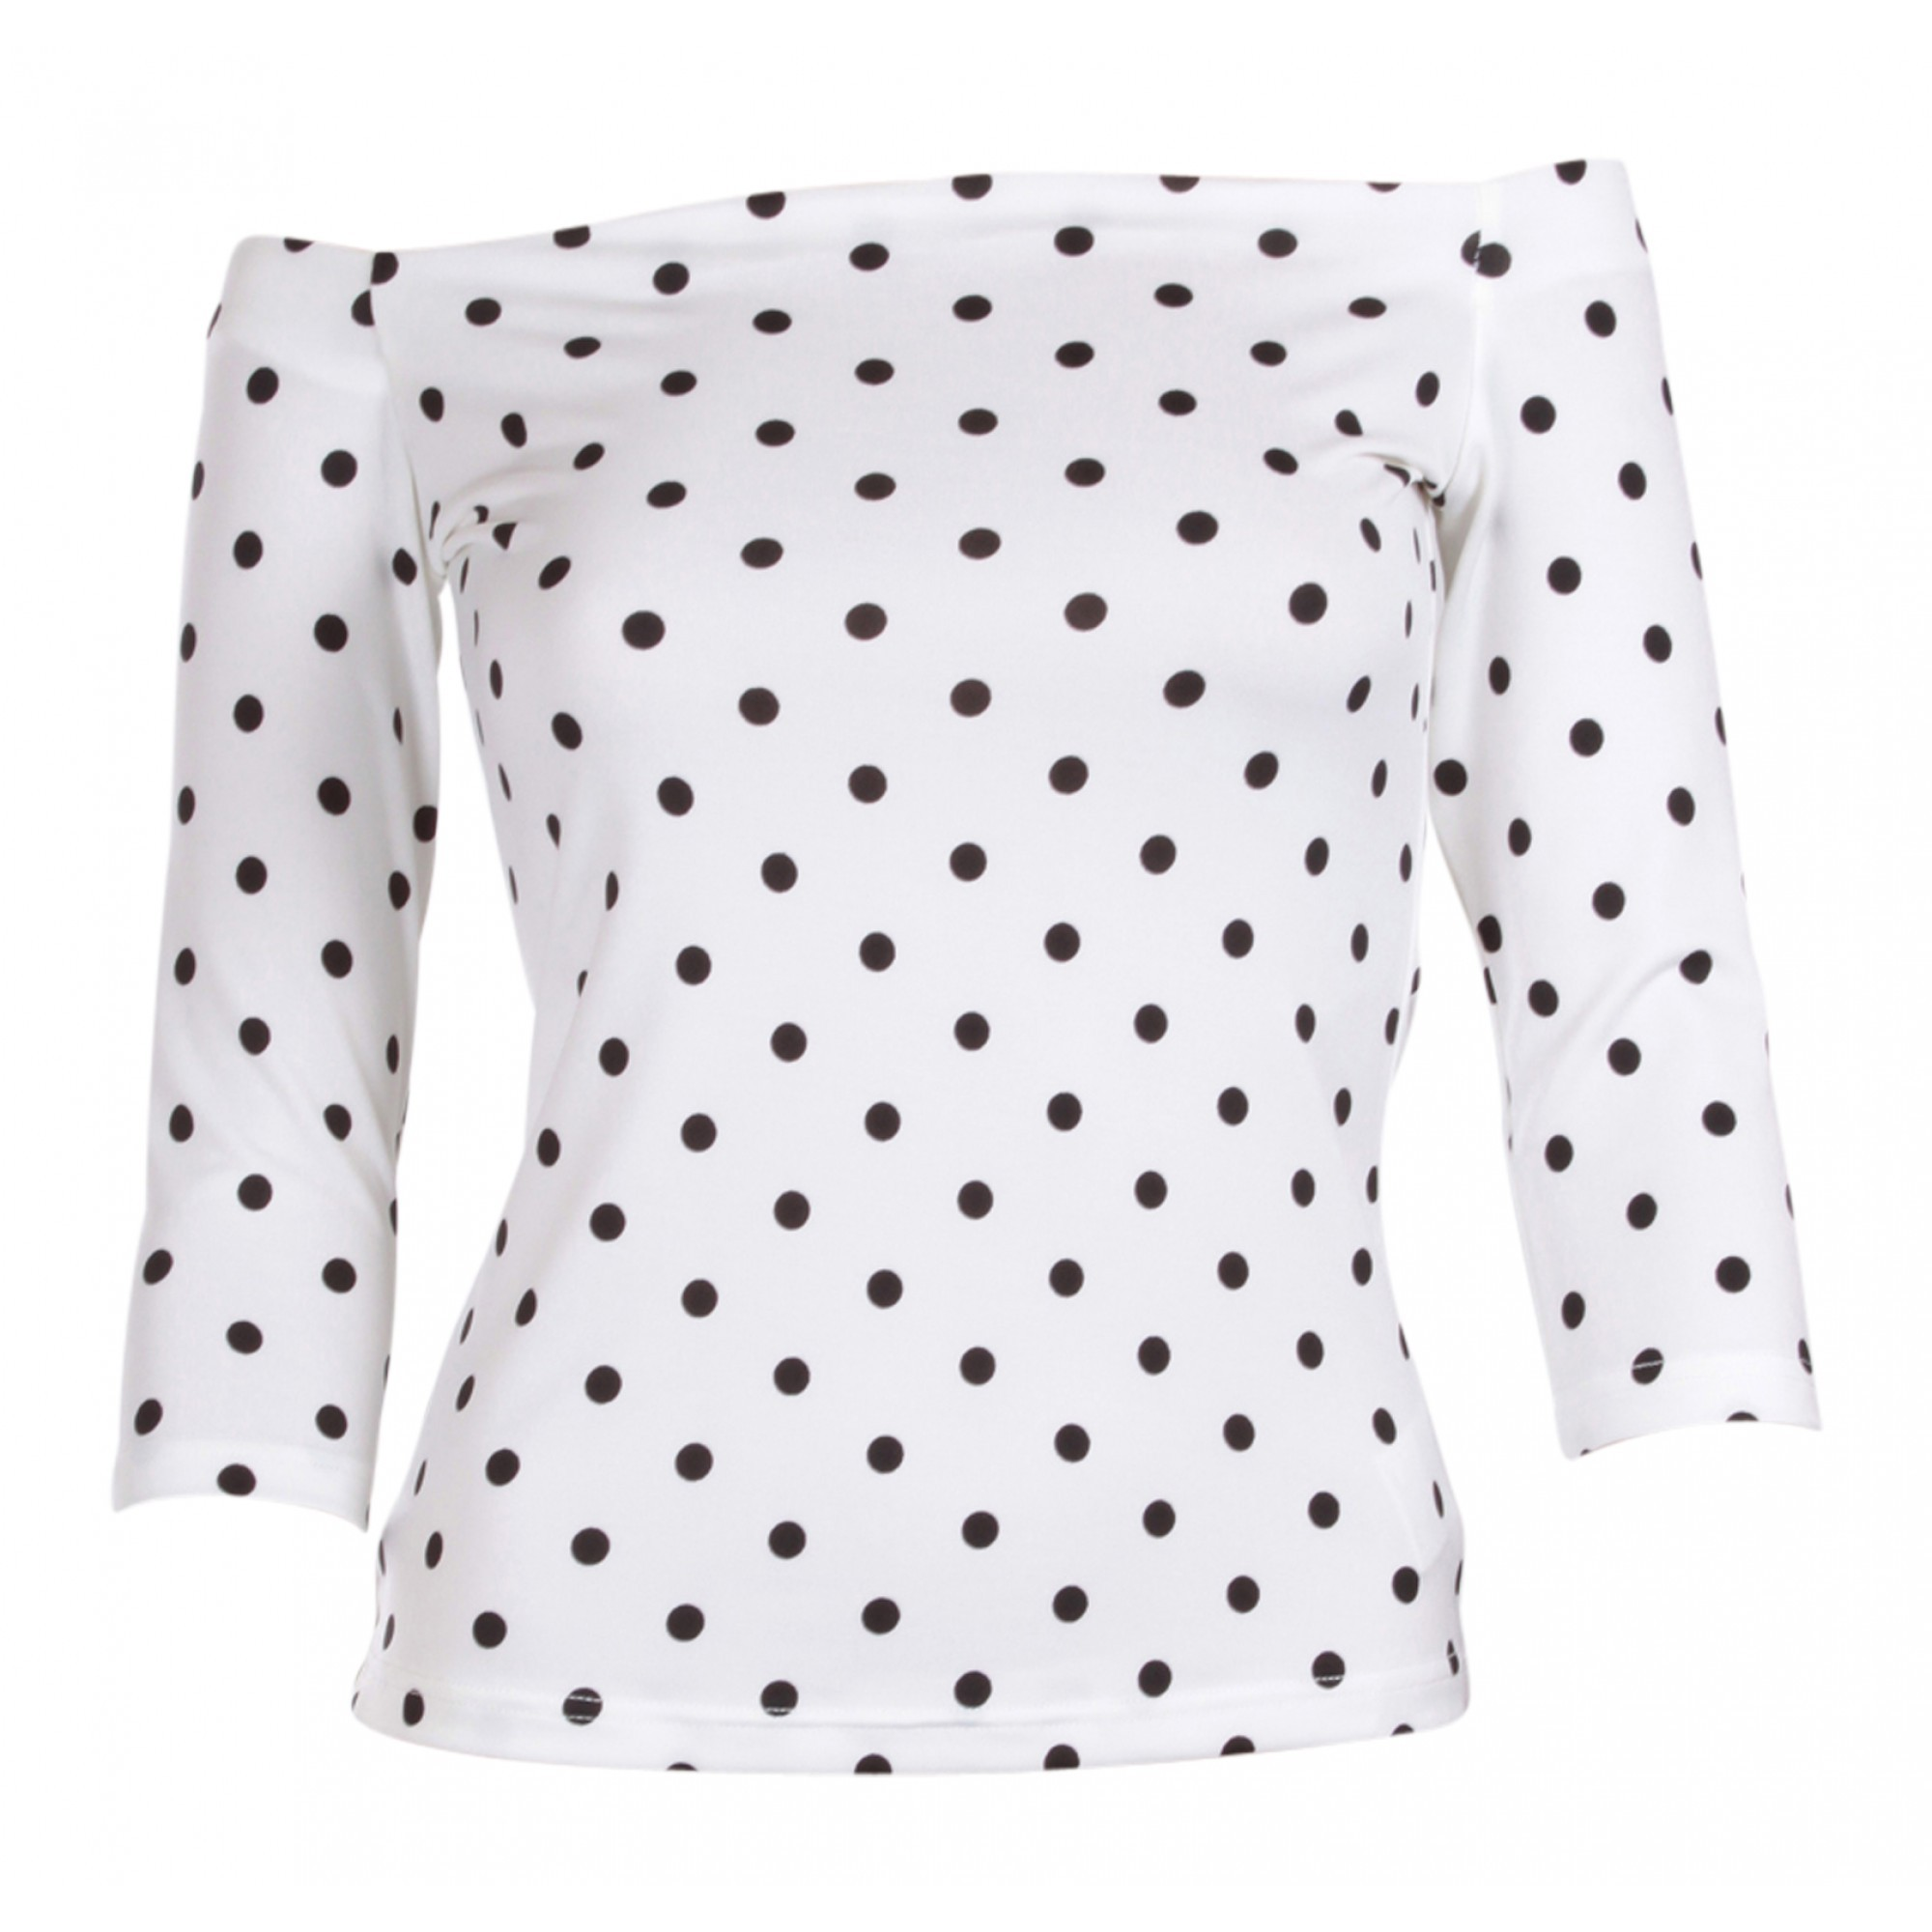 Dolly & Dotty White & Black Gloria Bardot Top